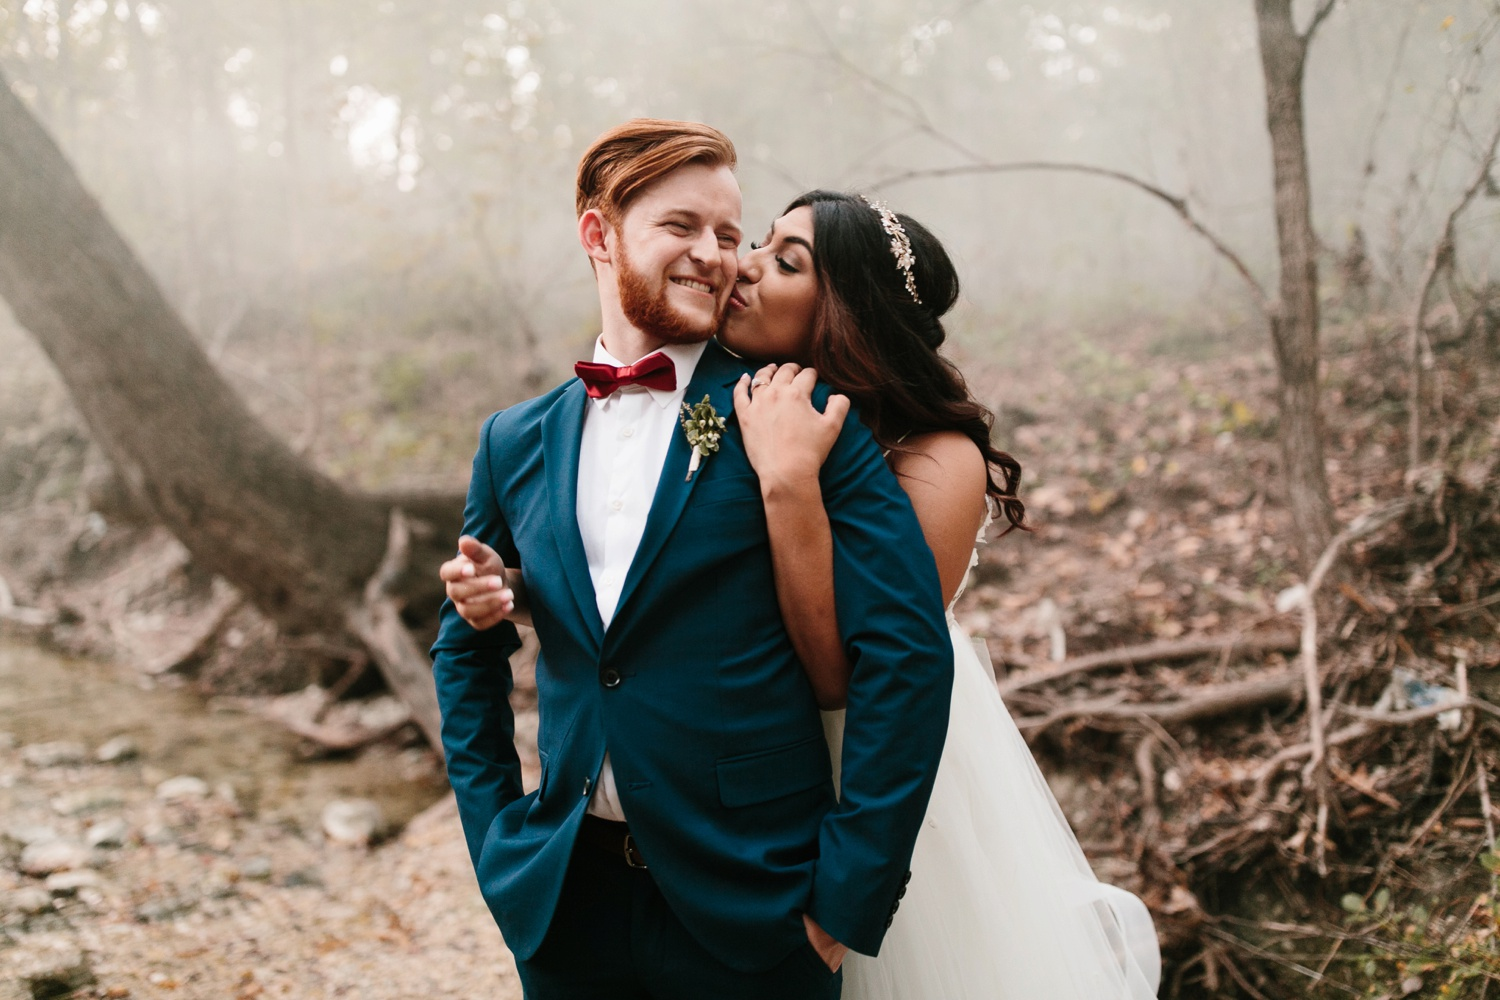 Grant + Lysette | a vibrant, deep burgundy and navy, and mixed metals wedding at Hidden Pines Chapel by North Texas Wedding Photographer Rachel Meagan Photography 259